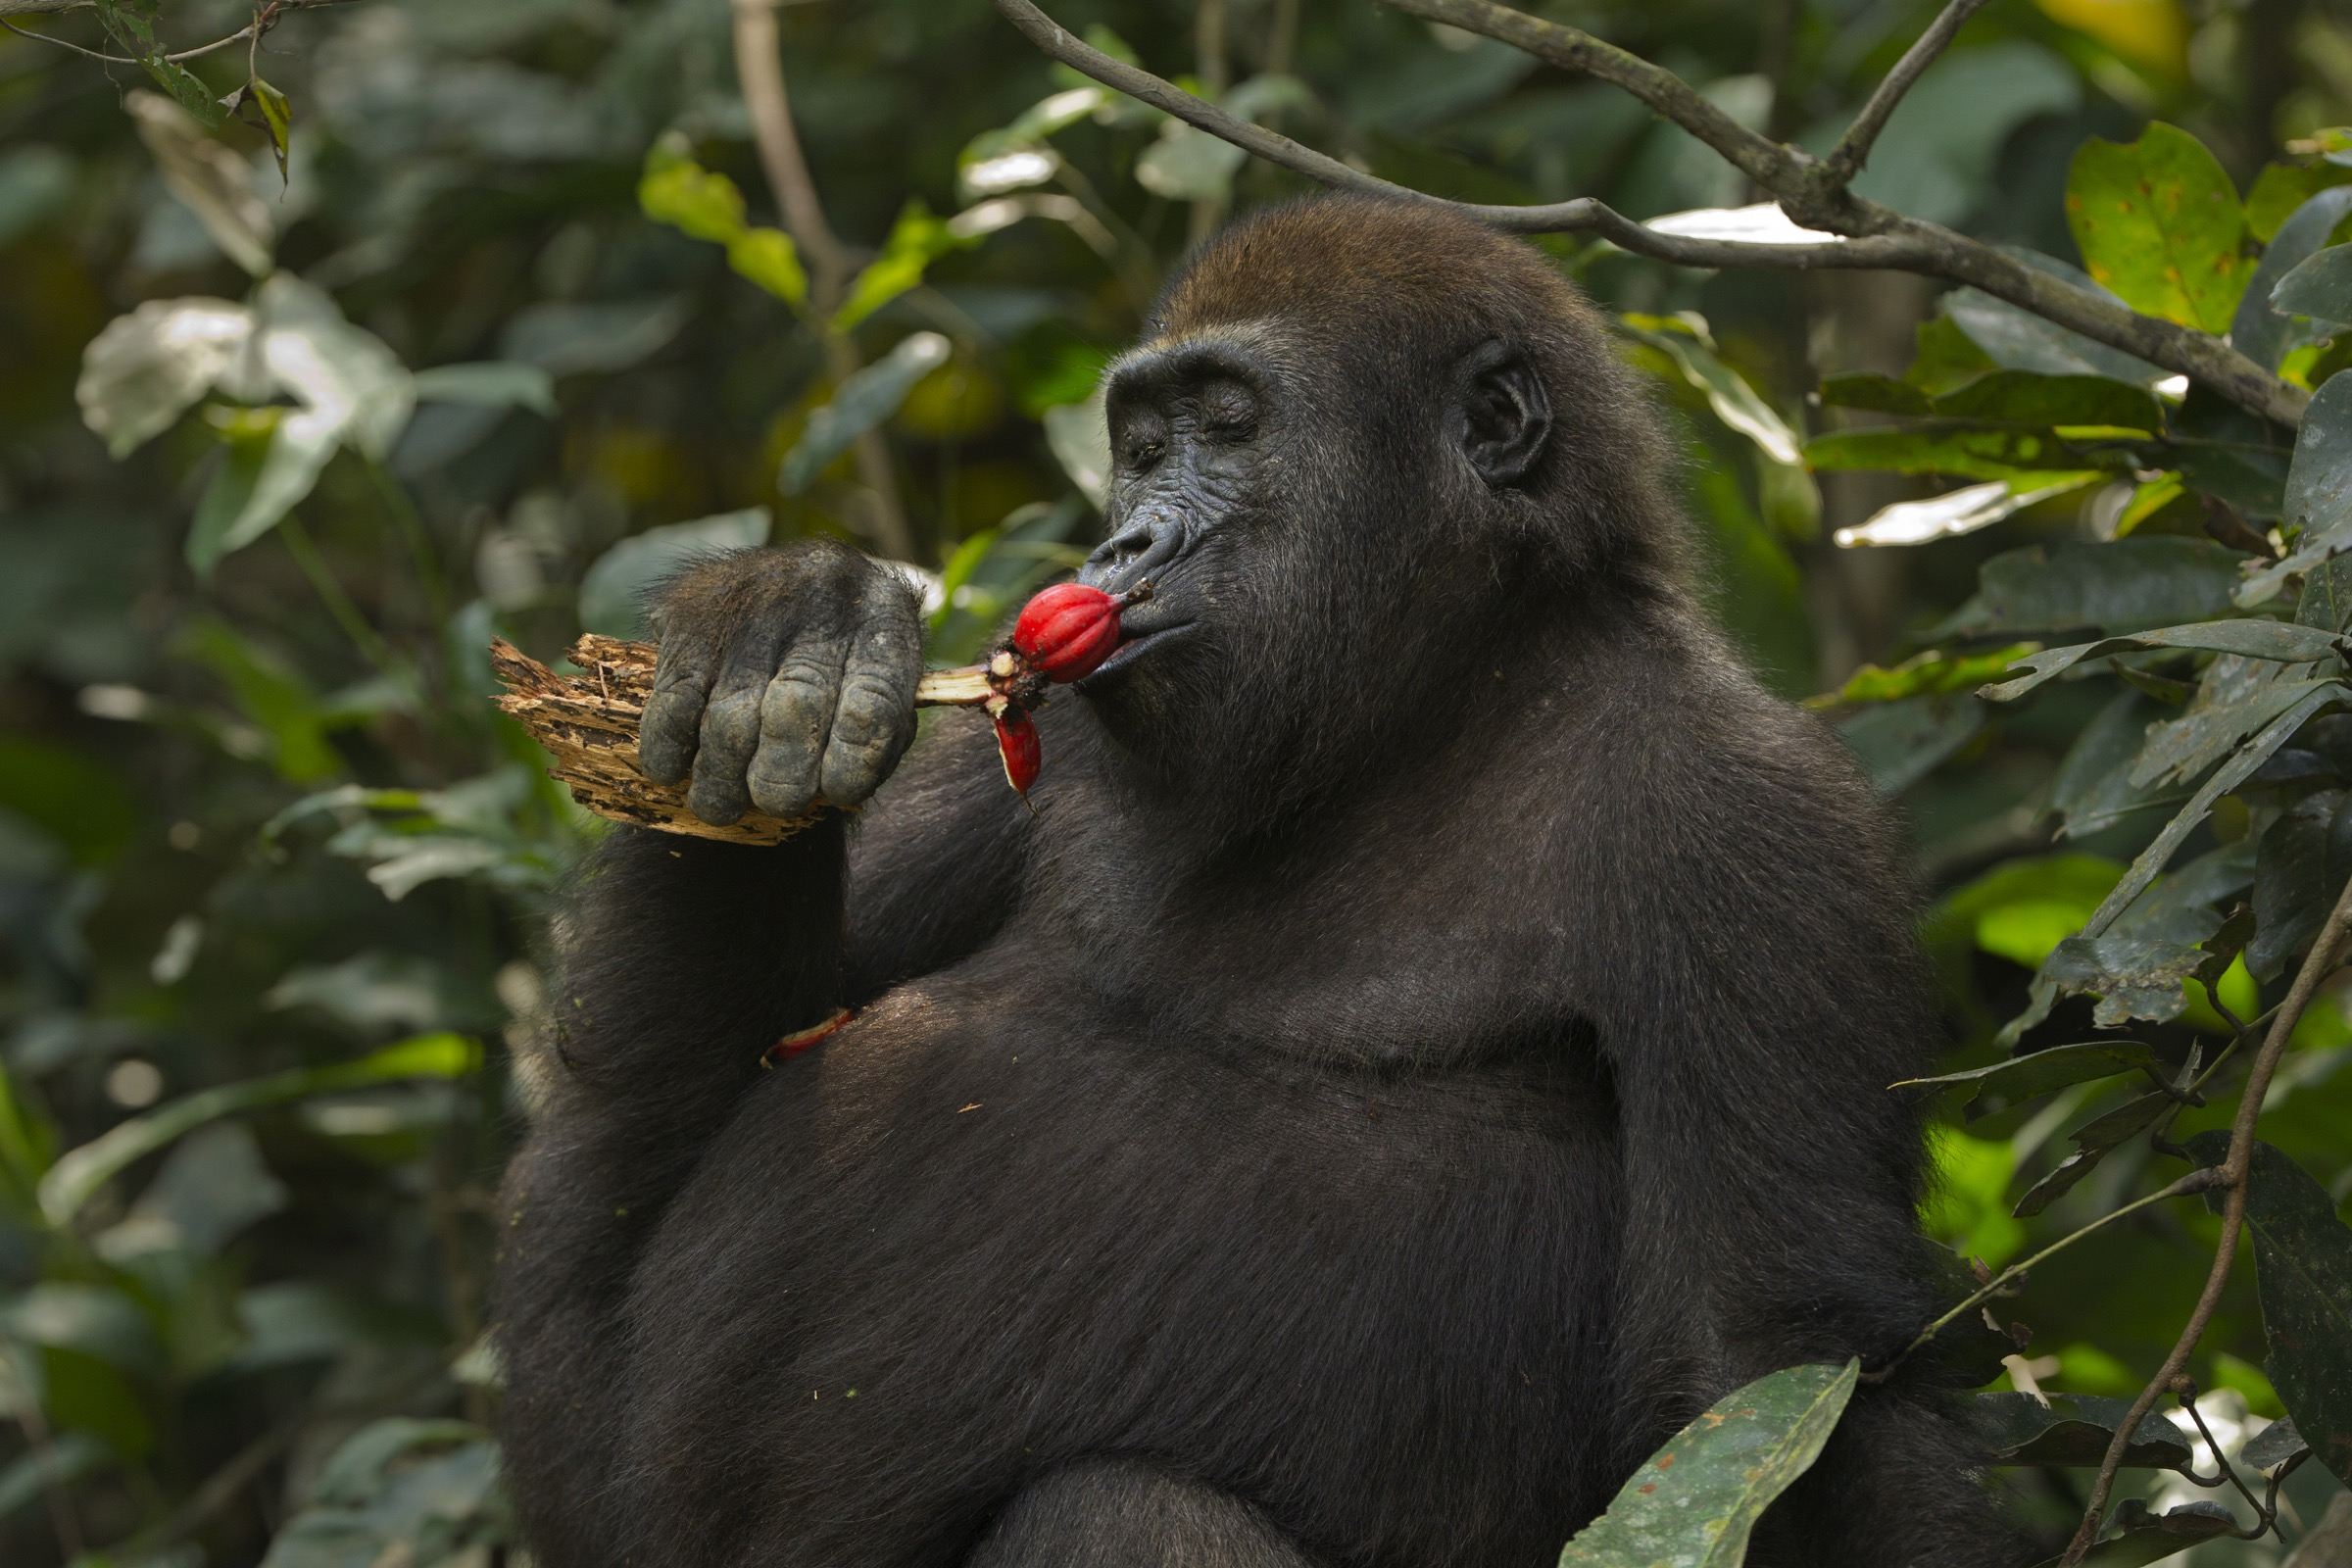 Mobangi feeds on fruit while holding a piece of rotting wood that he planned eat later. His father, Makumba, got first dibs on food, but Mobangi would clean up all the leftovers.